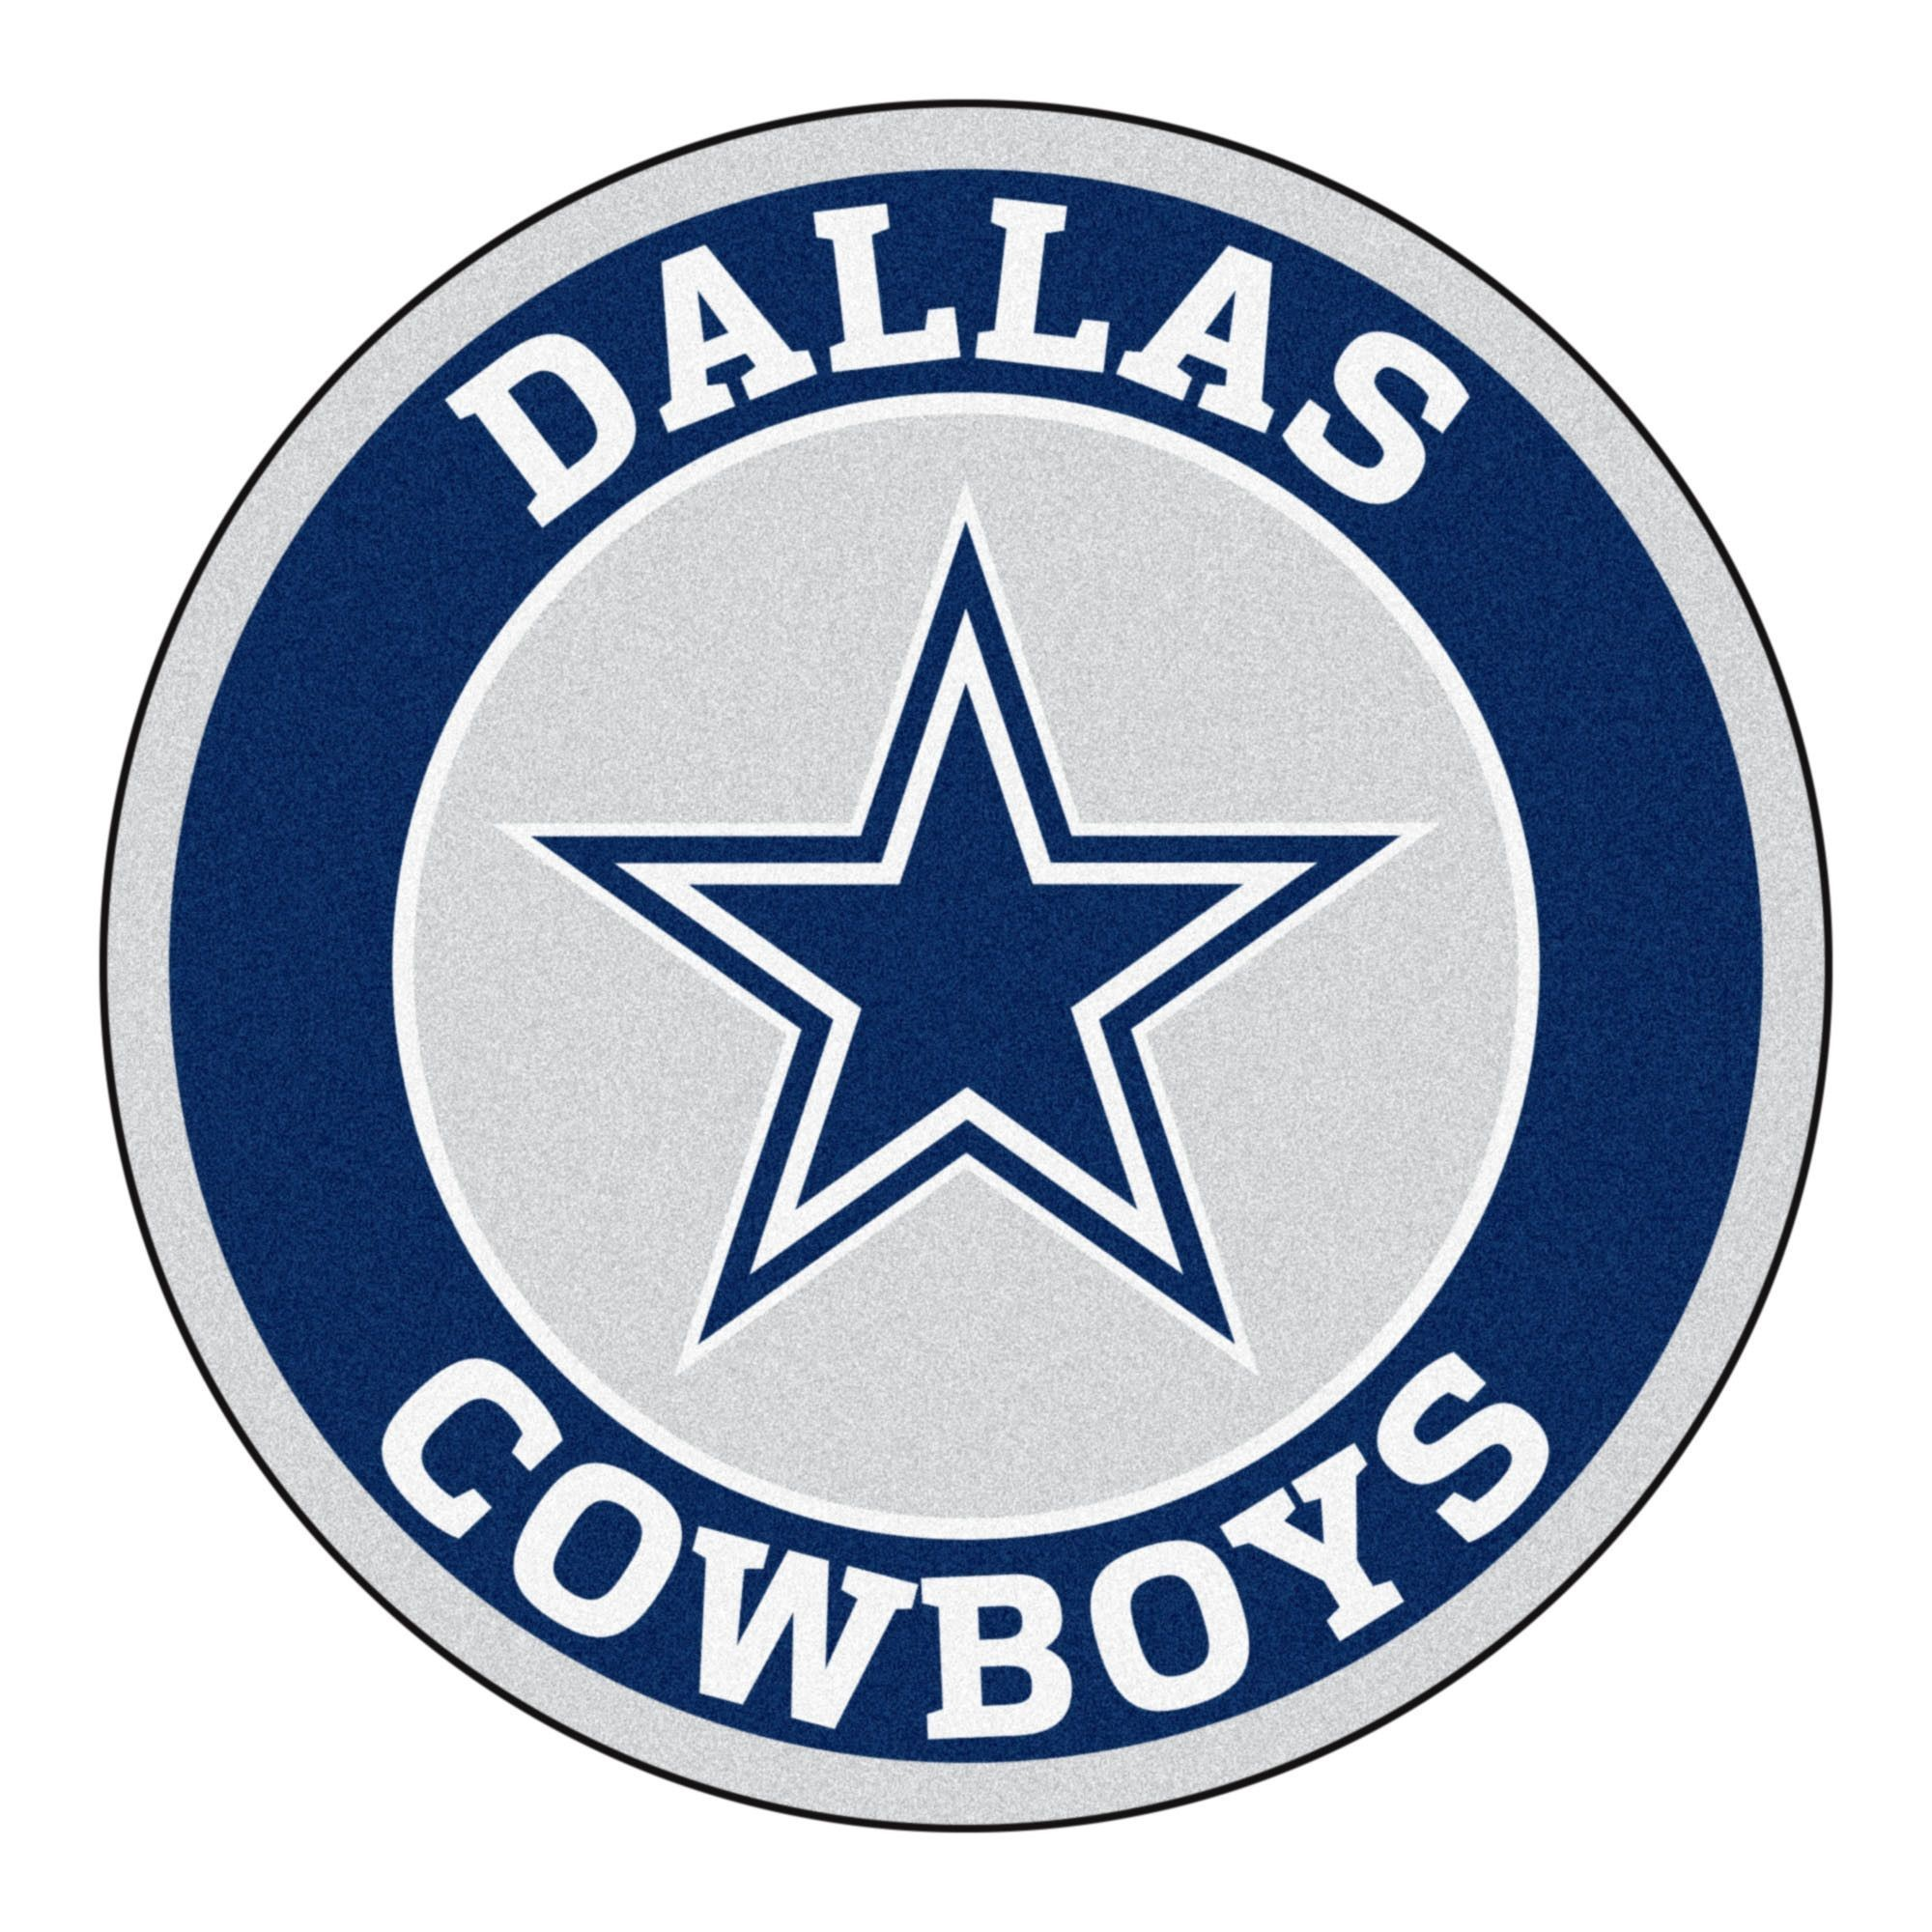 Dallas cowboys emblem clipart picture free library Free Dallas Cowboys Clipart Pictures - Clipartix picture free library